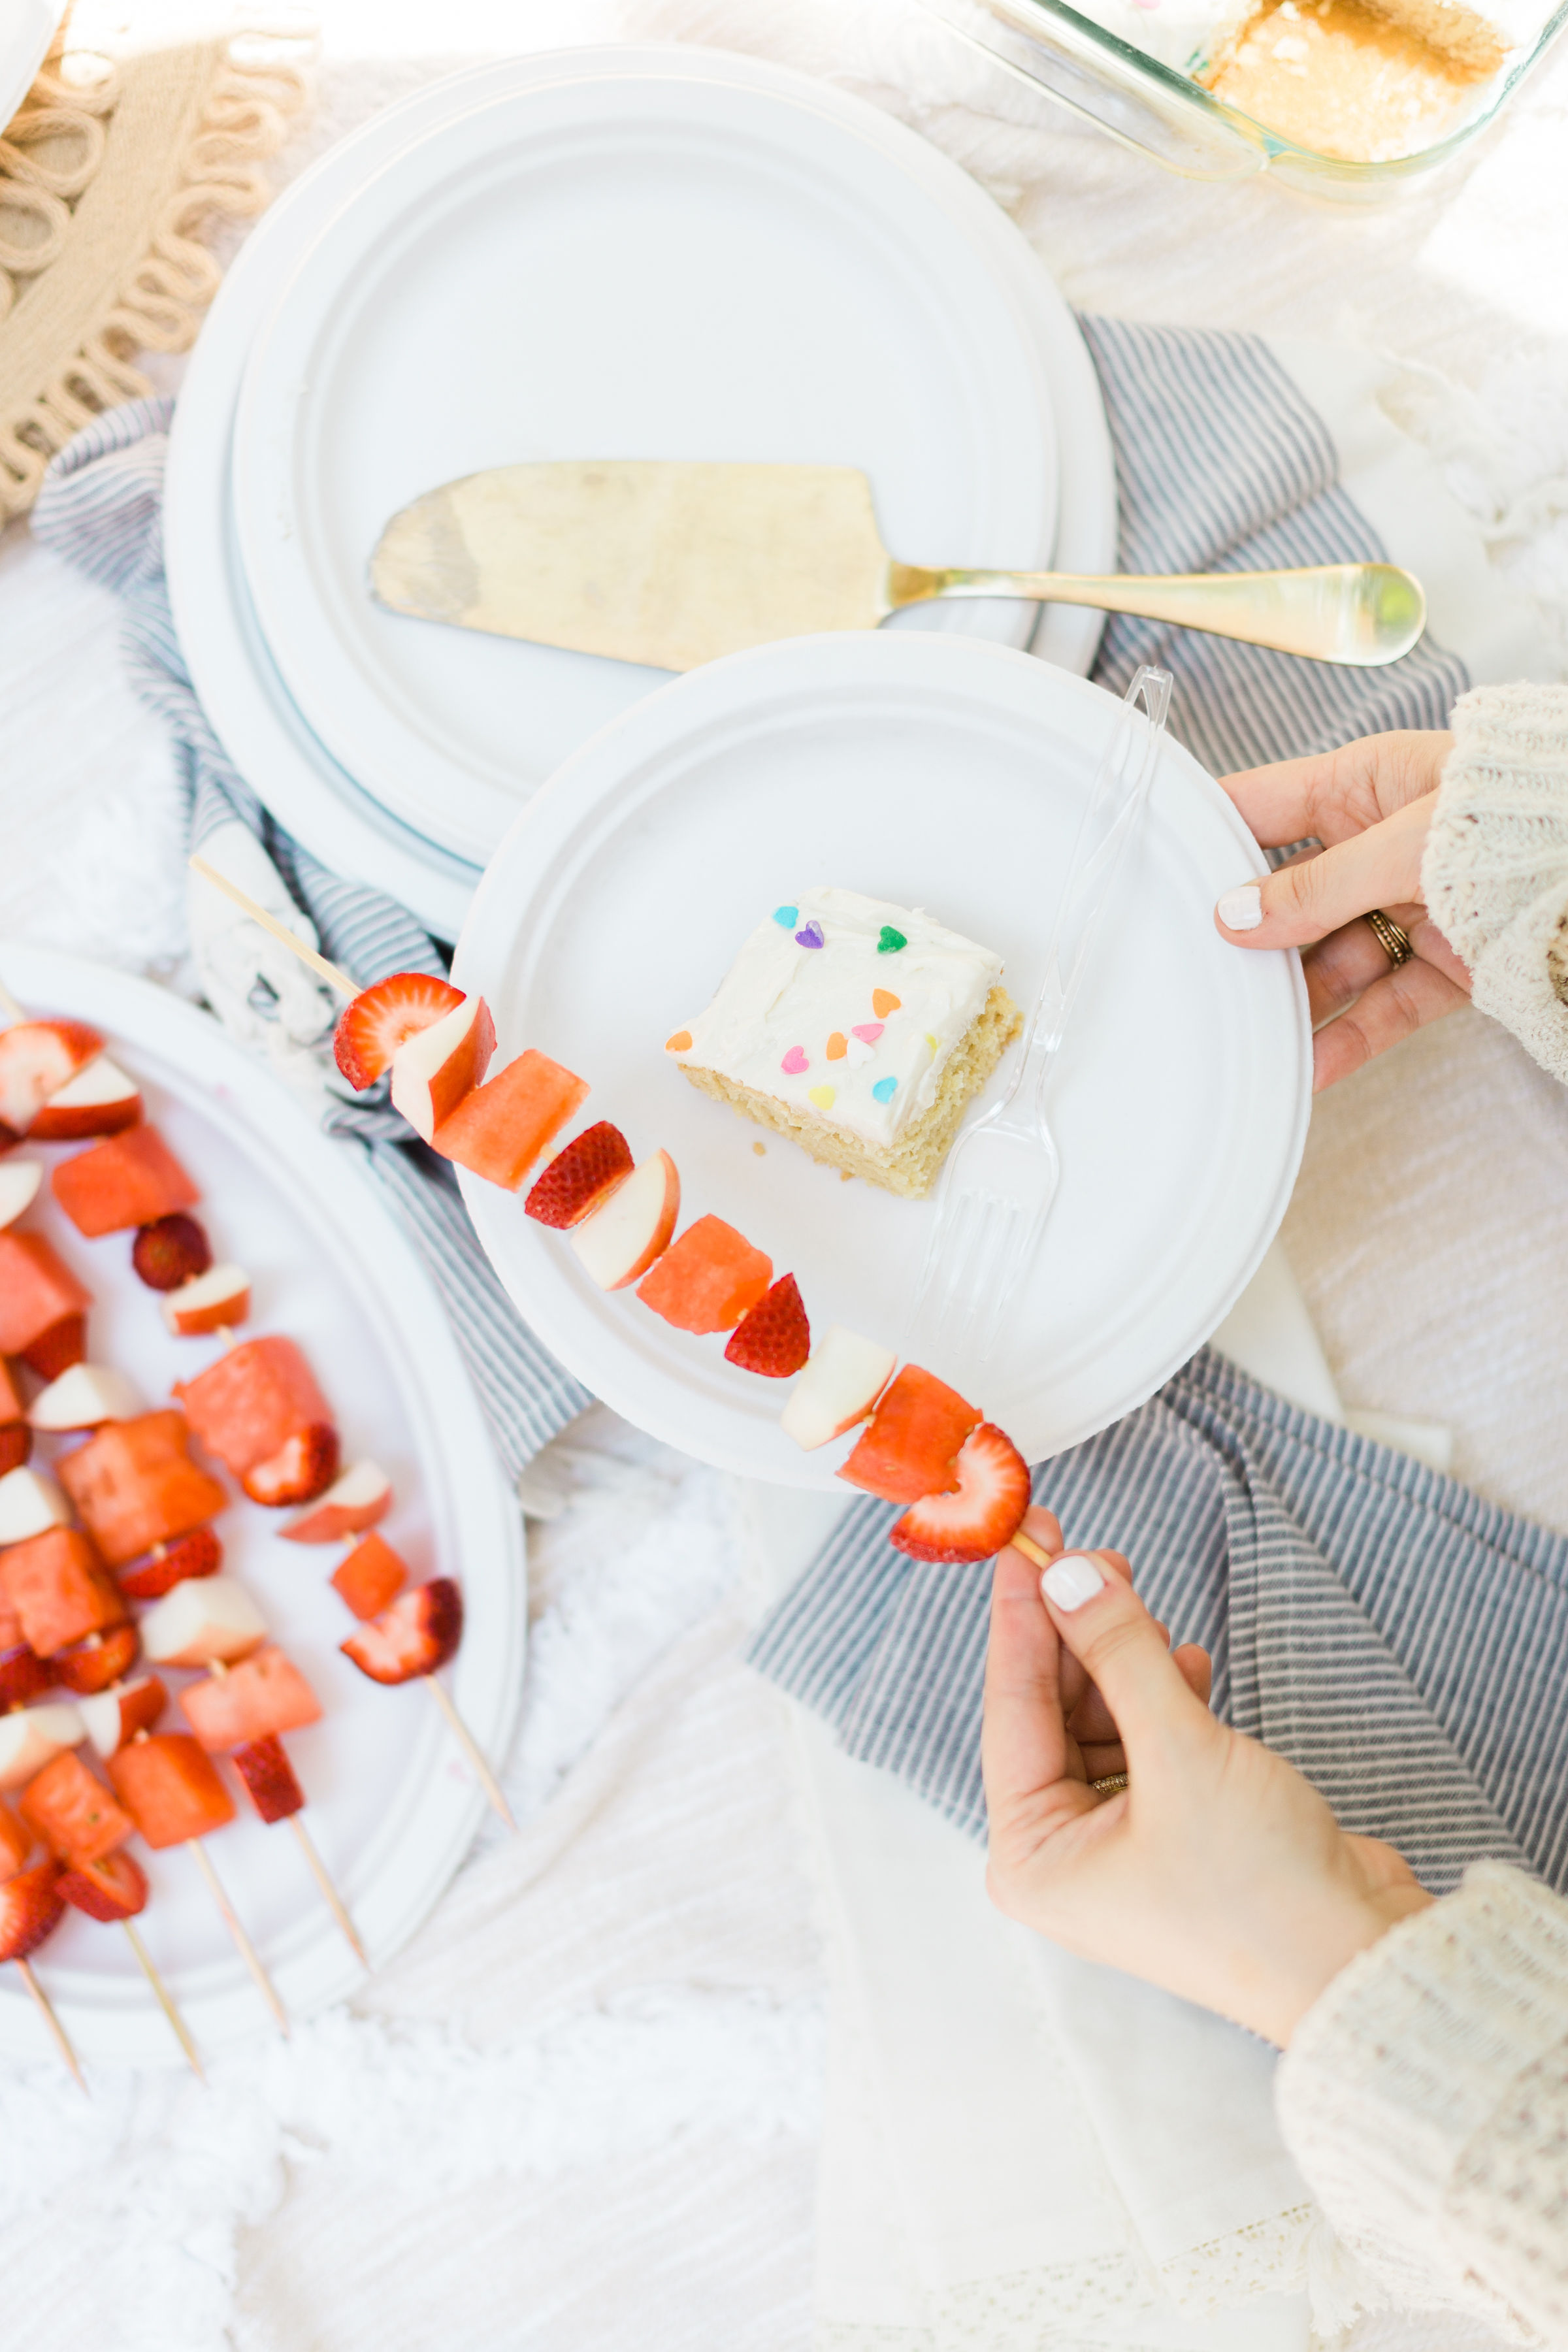 How to Throw a Simple Backyard BBQ Picnic | Glitter Inc